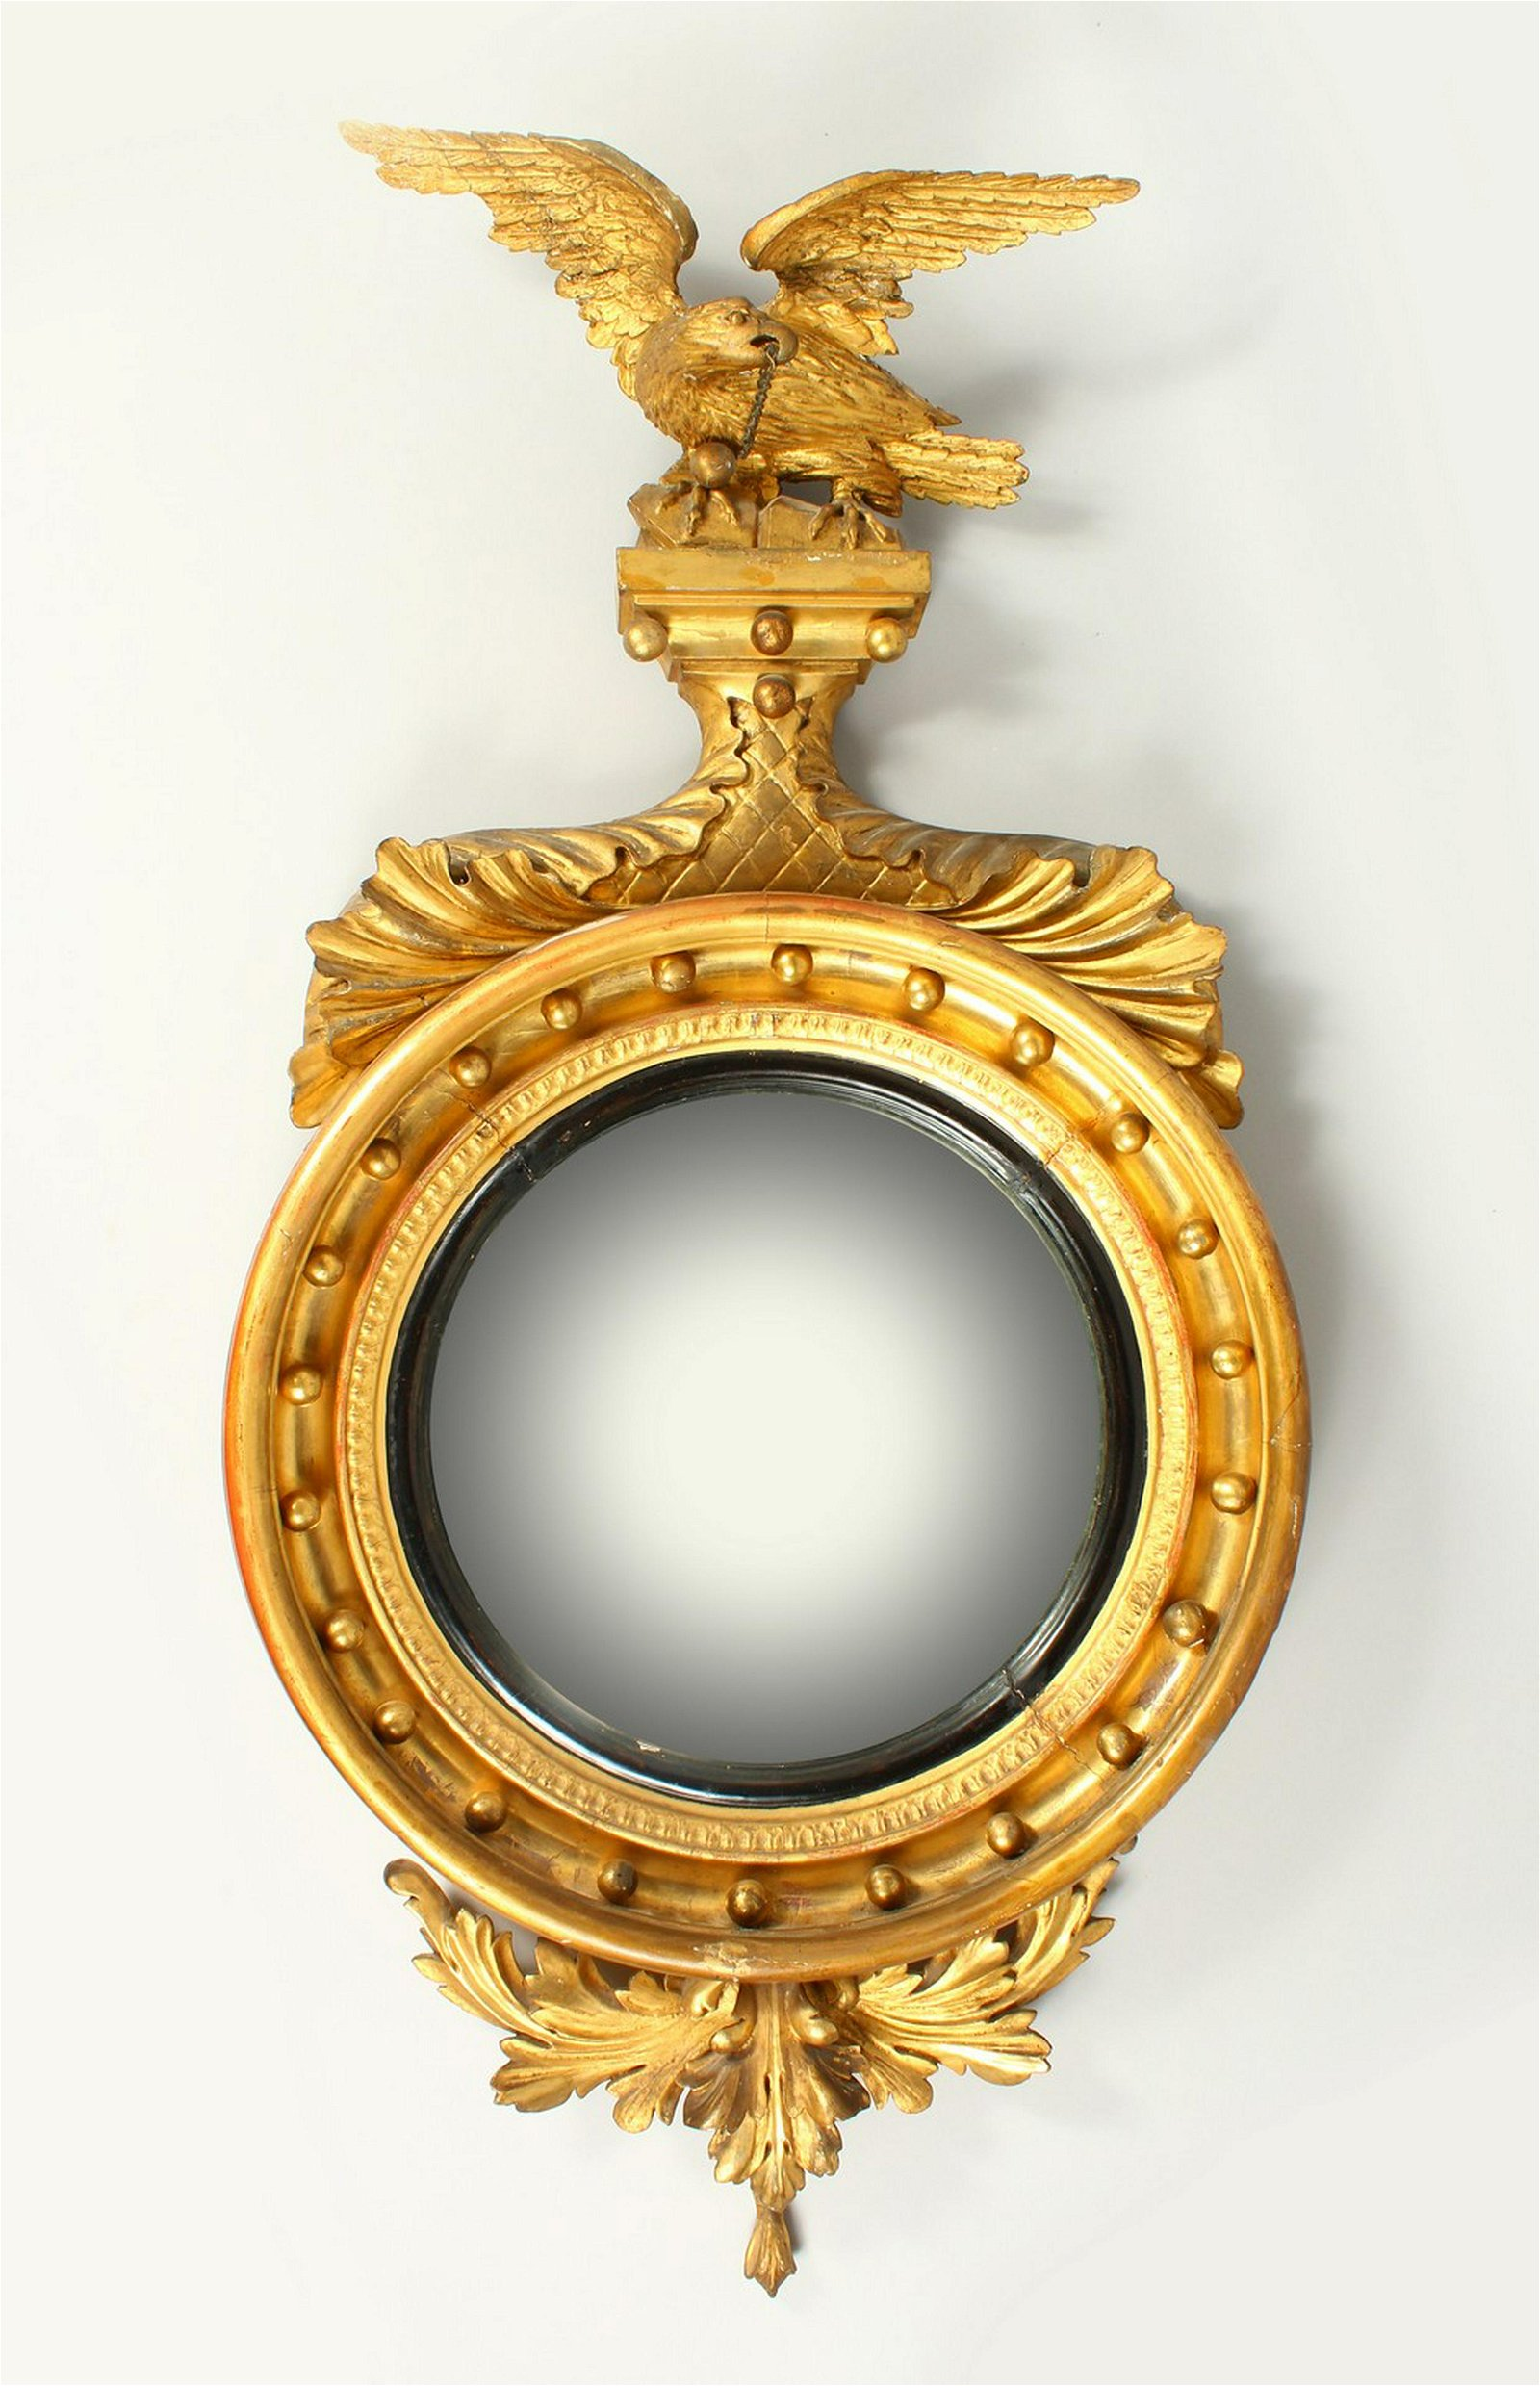 A REGENCY GILTWOOD CONVEX WALL MIRROR, with eagle